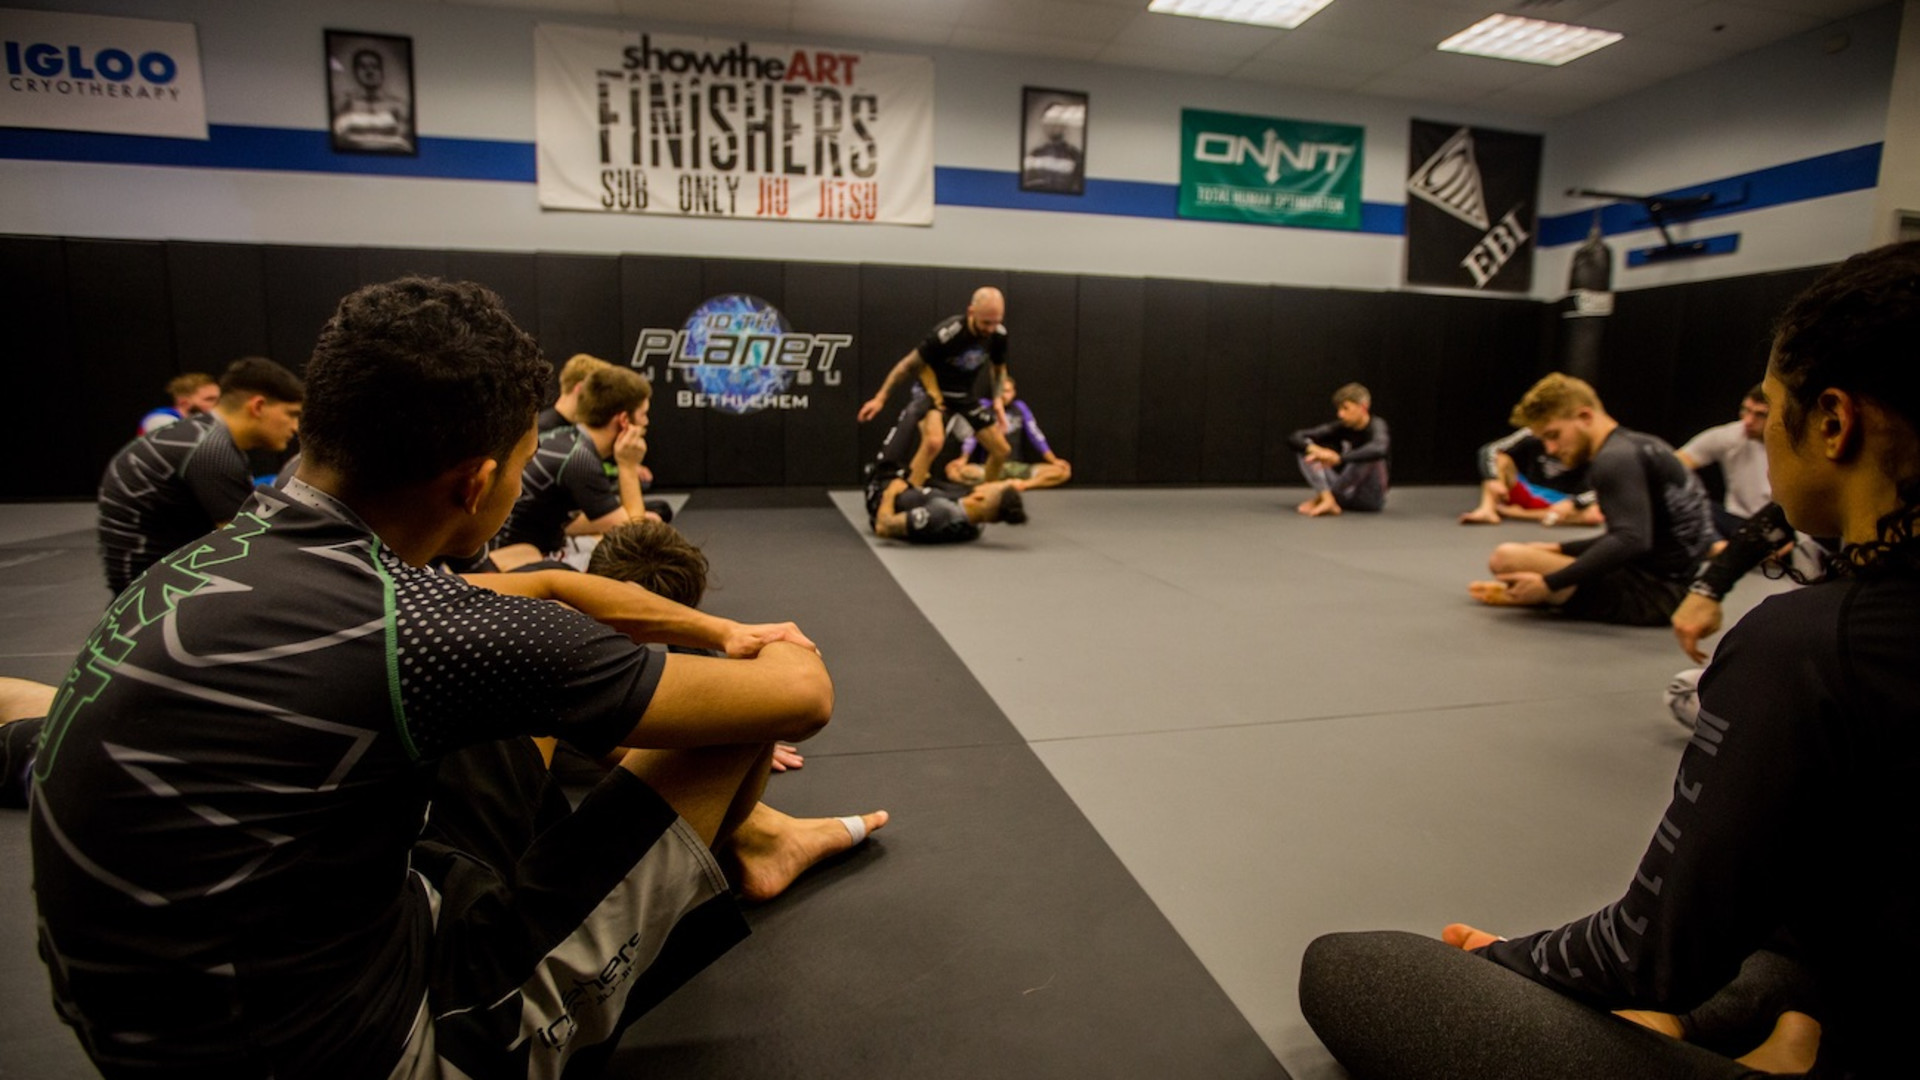 Learn real world self-defense with No-Gi Jiu Jitsu and Kickboxing in Easton